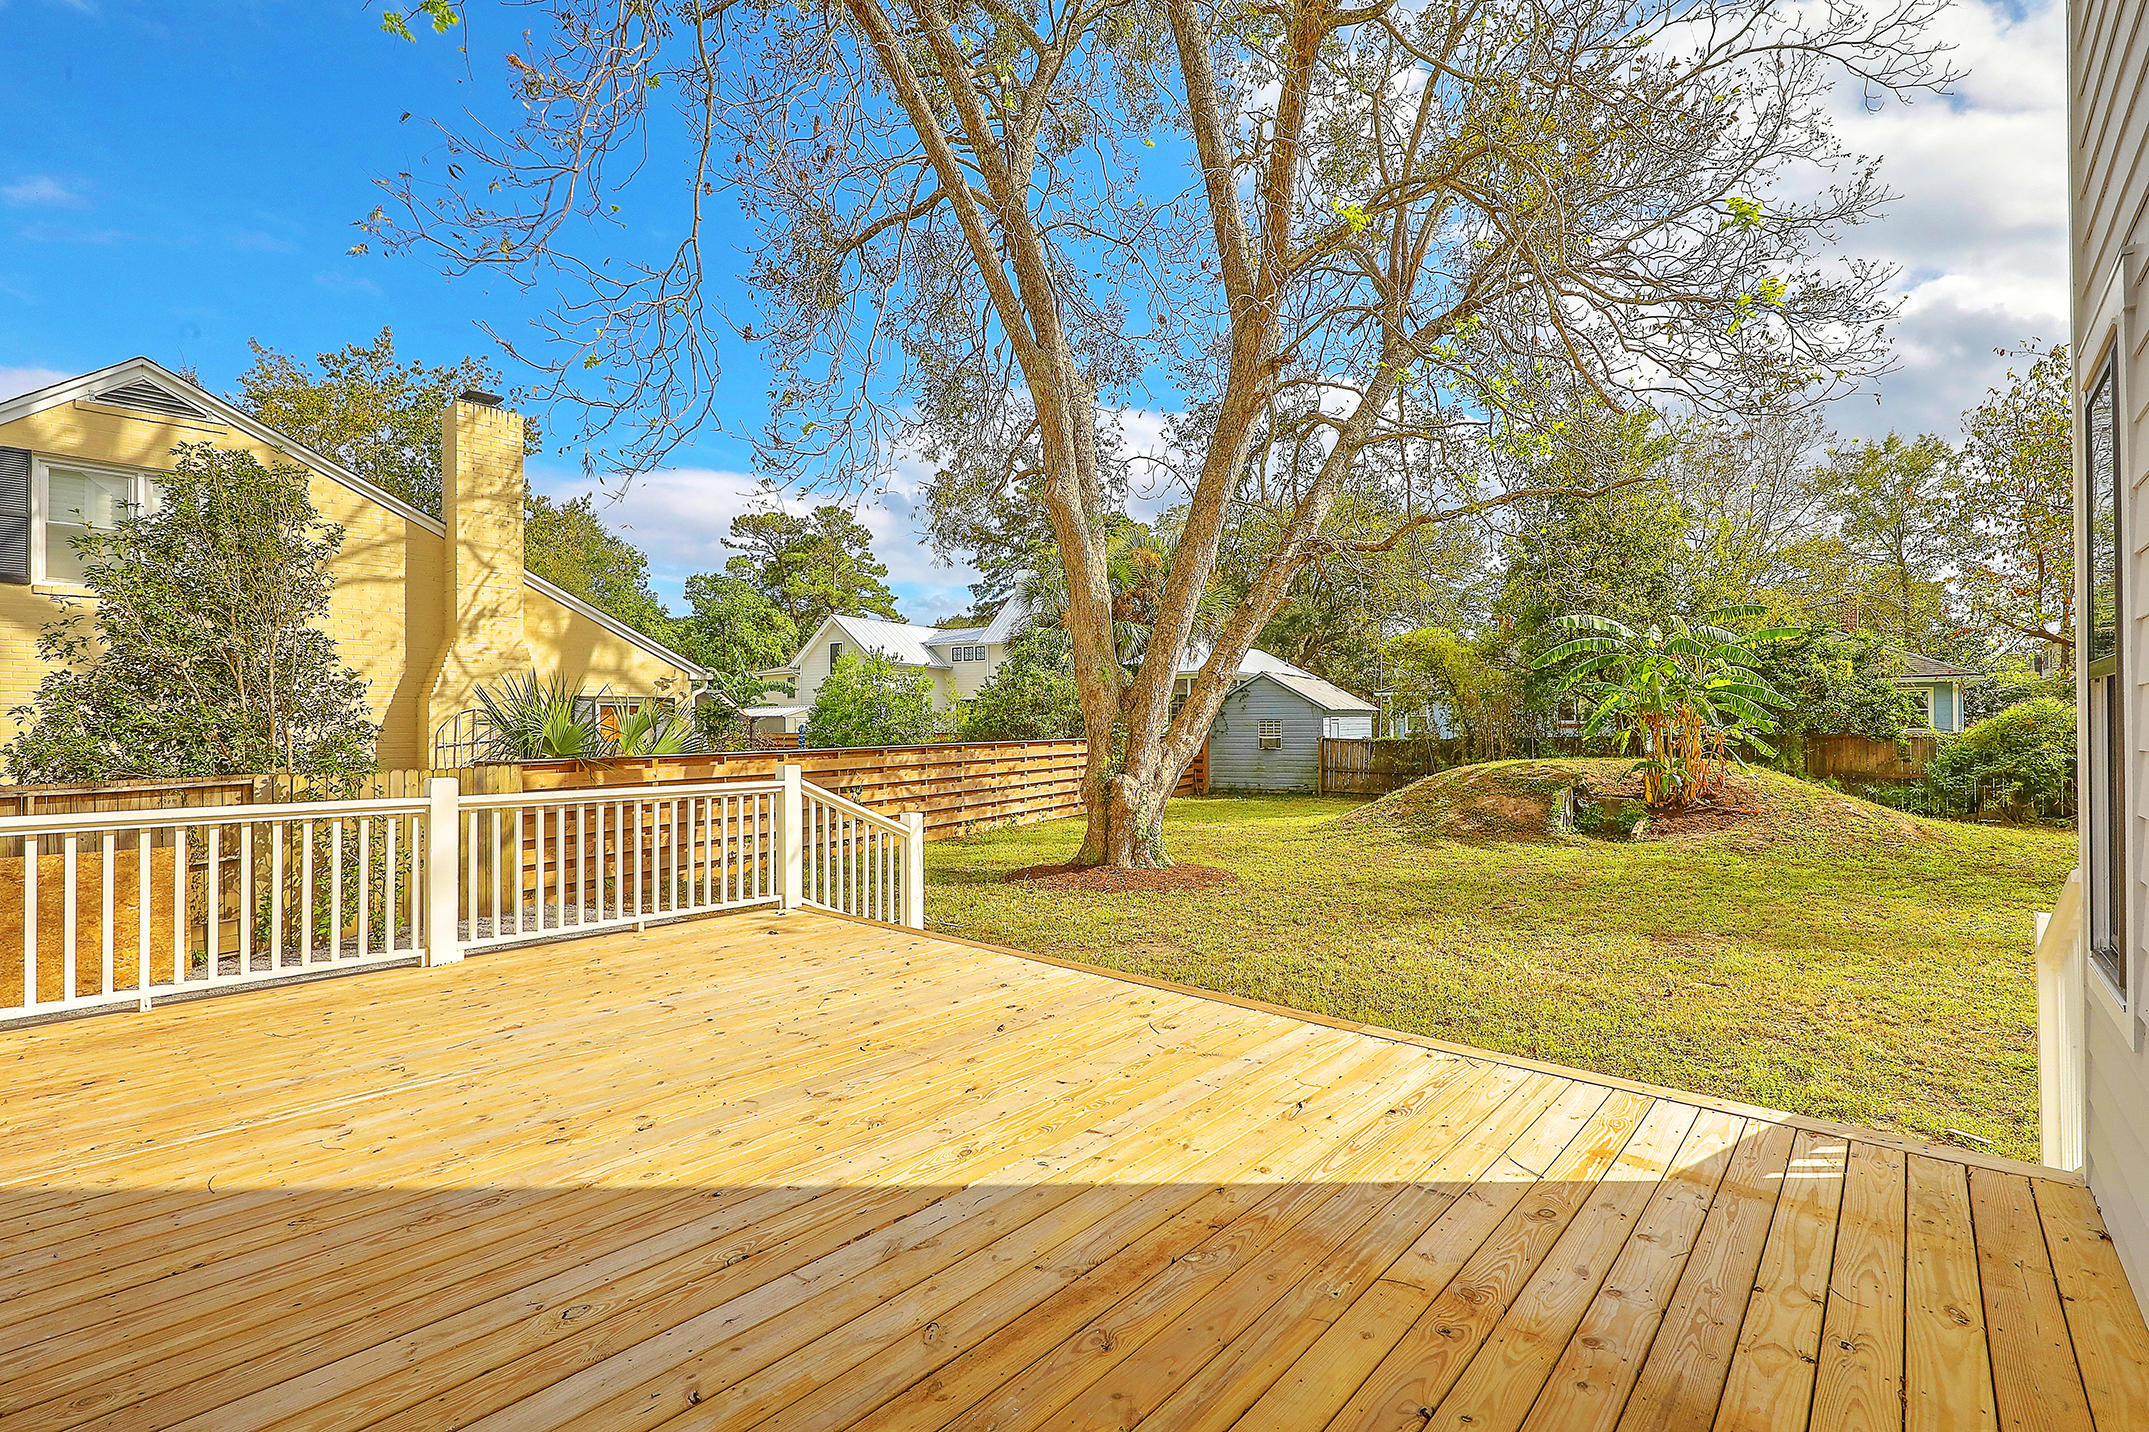 Riverland Terrace Homes For Sale - 2035 Wappoo Hall, Charleston, SC - 0